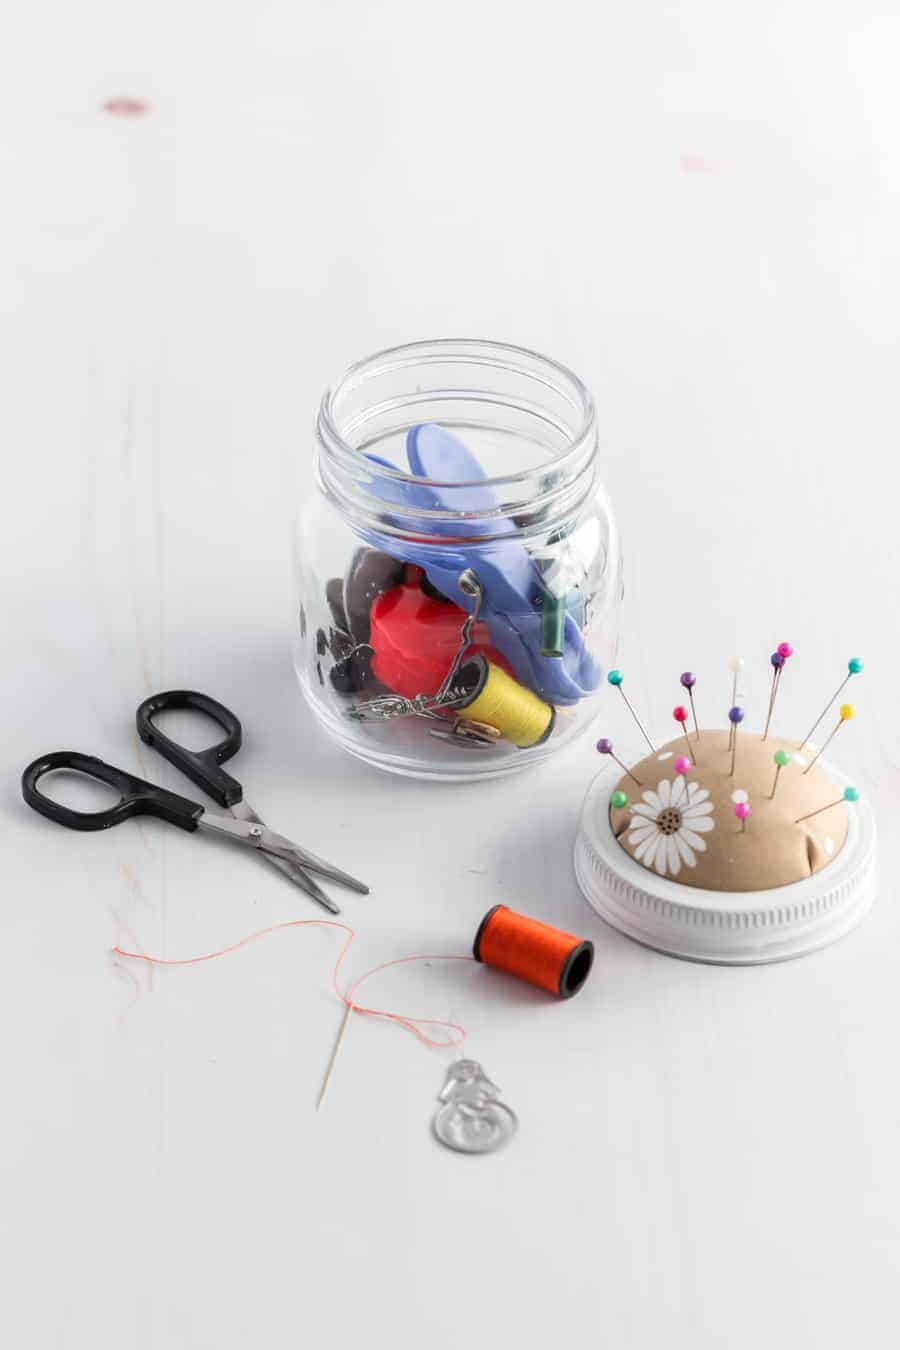 A jar full of sewing tools with scissors out by it, a threaded needle connected to the spool, a threader, and the jar lid made into a pin cushion.